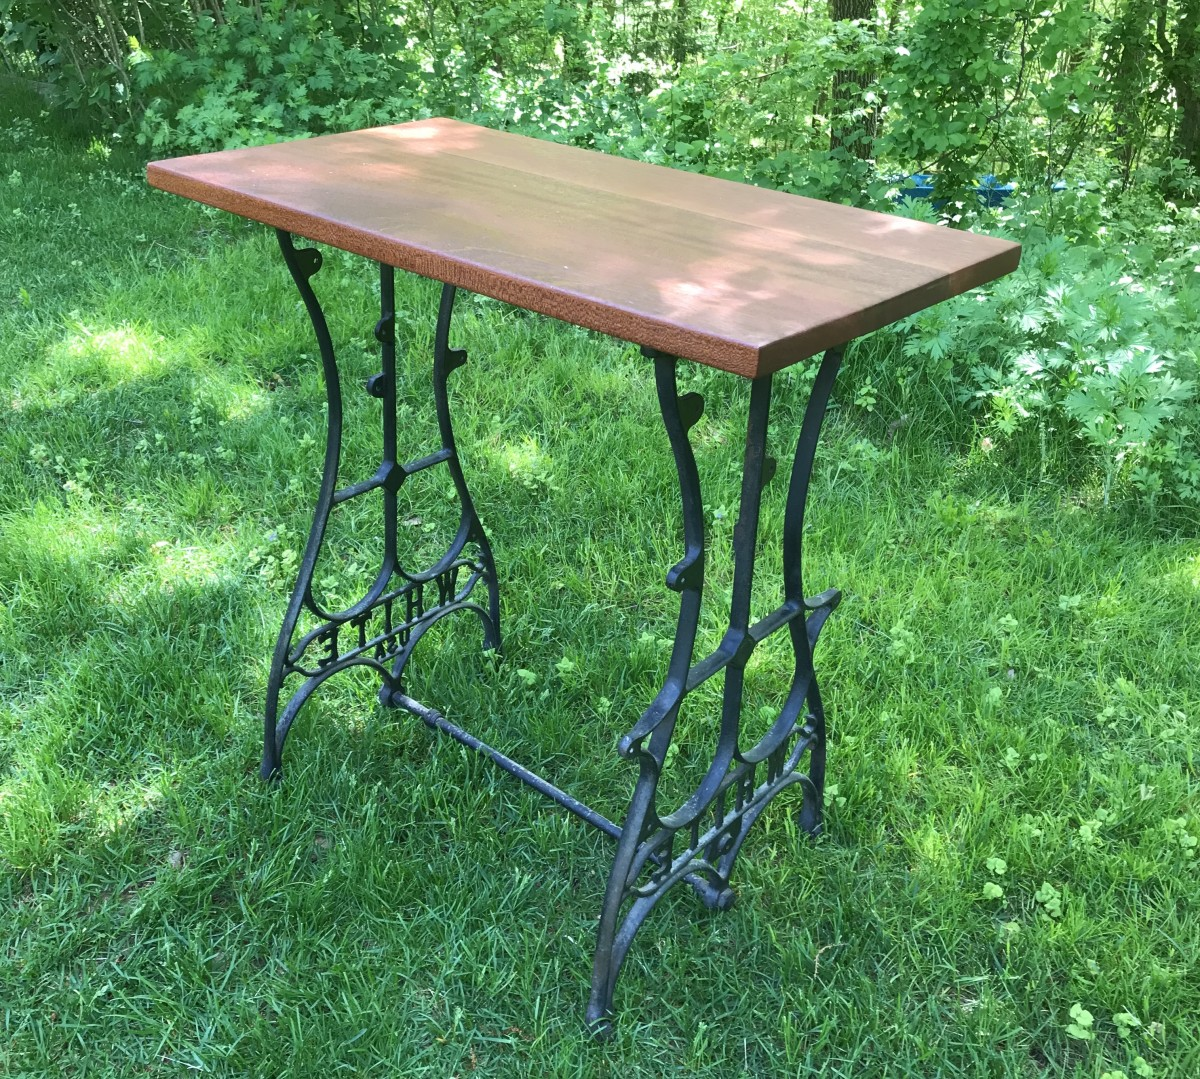 How to Repurpose an Antique Sewing Machine Base Into a Unique Table